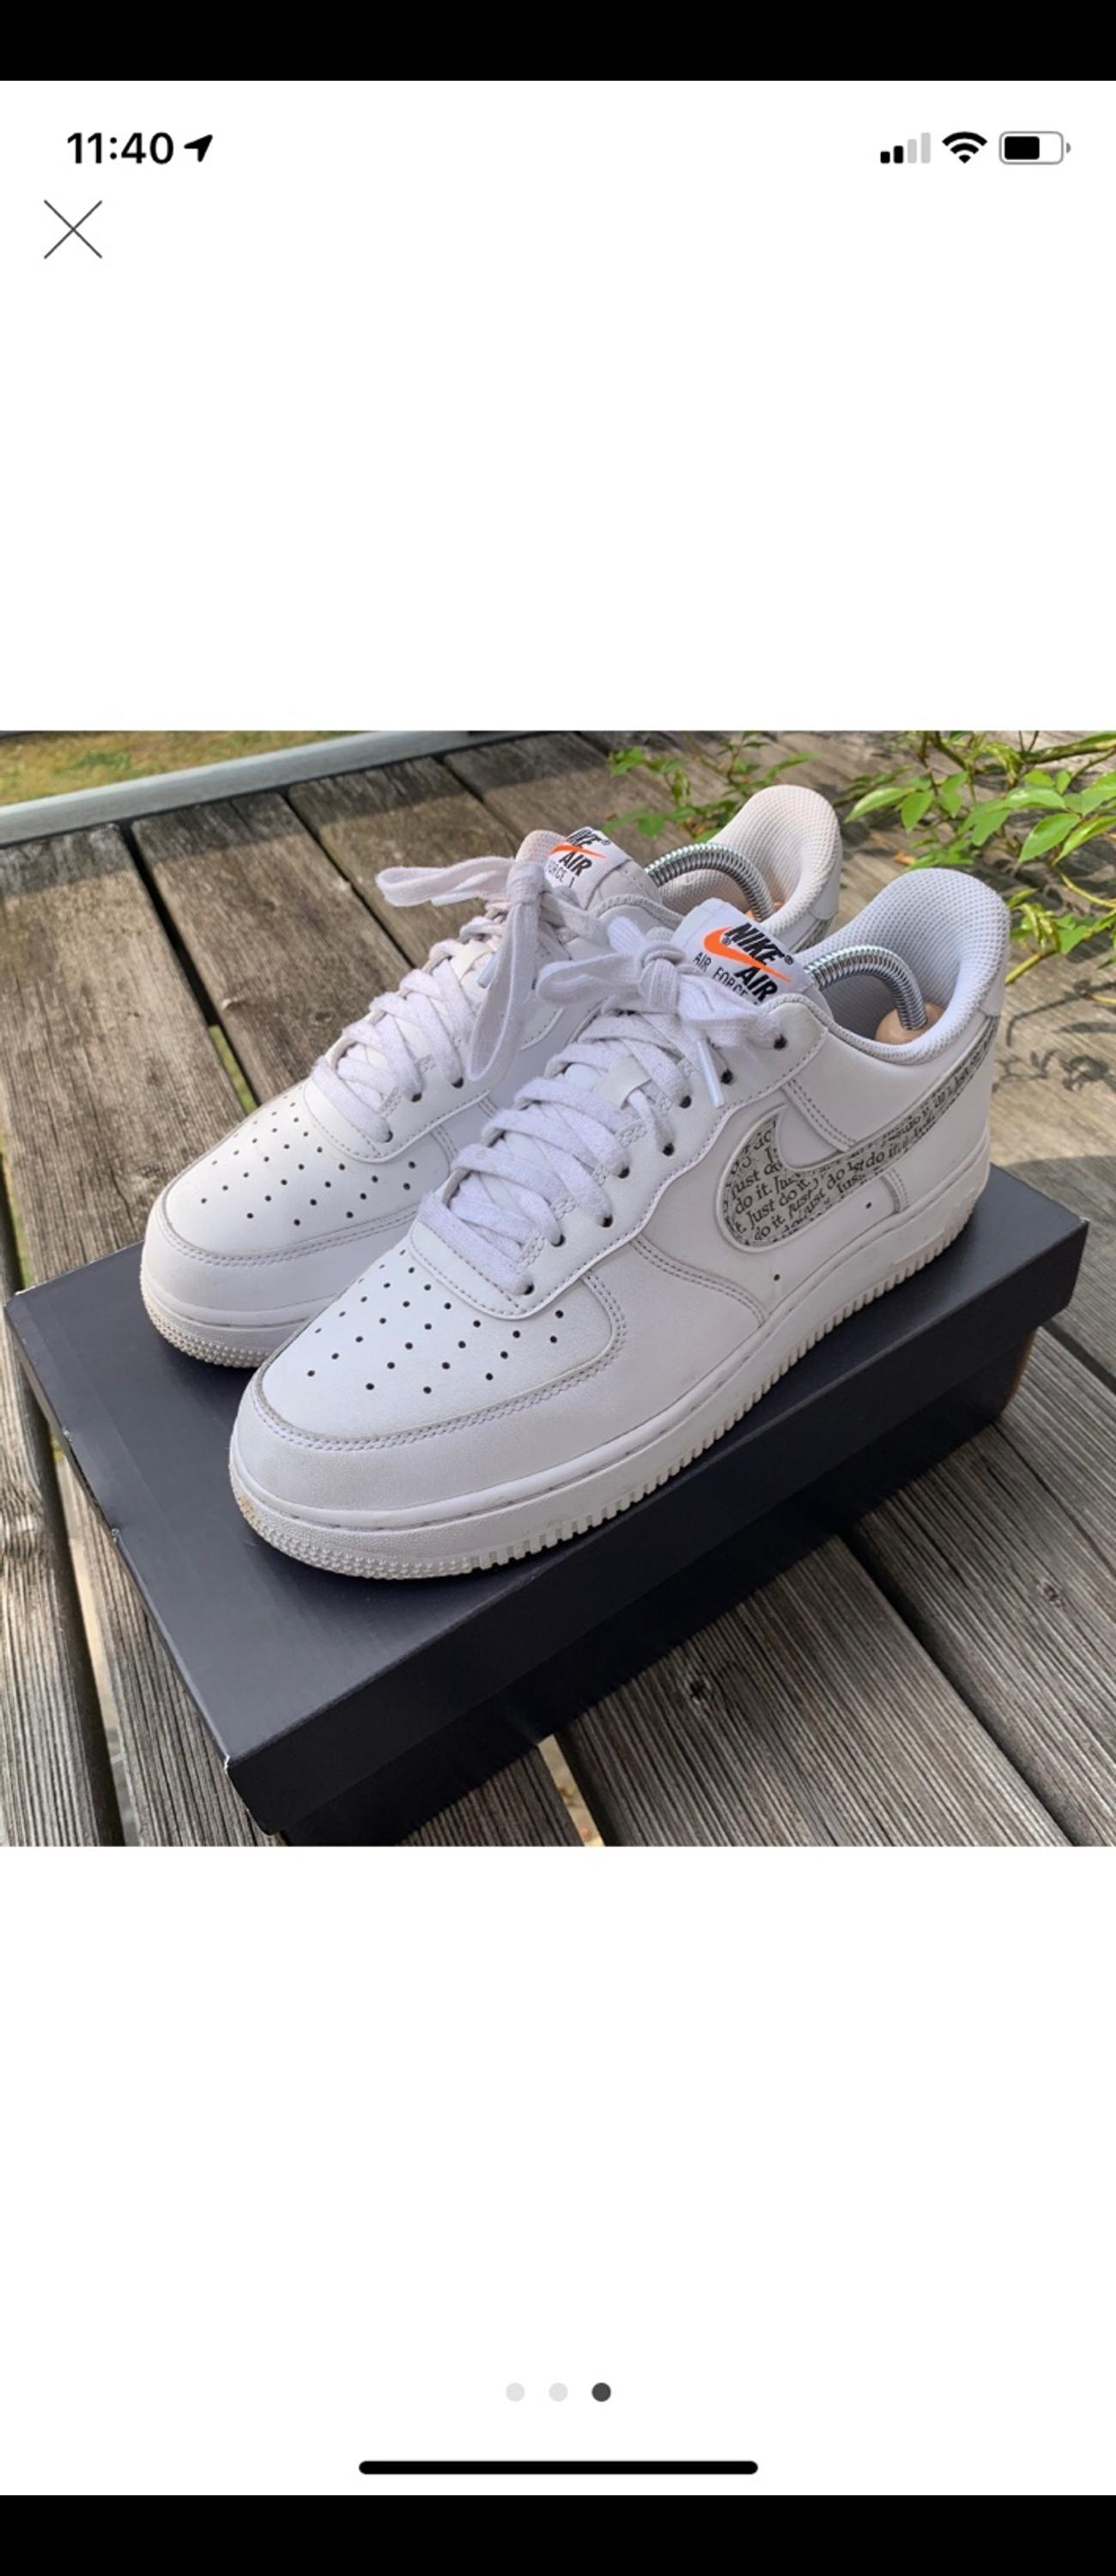 Nike Air Force 1'07 LV8 Gr. 42,5